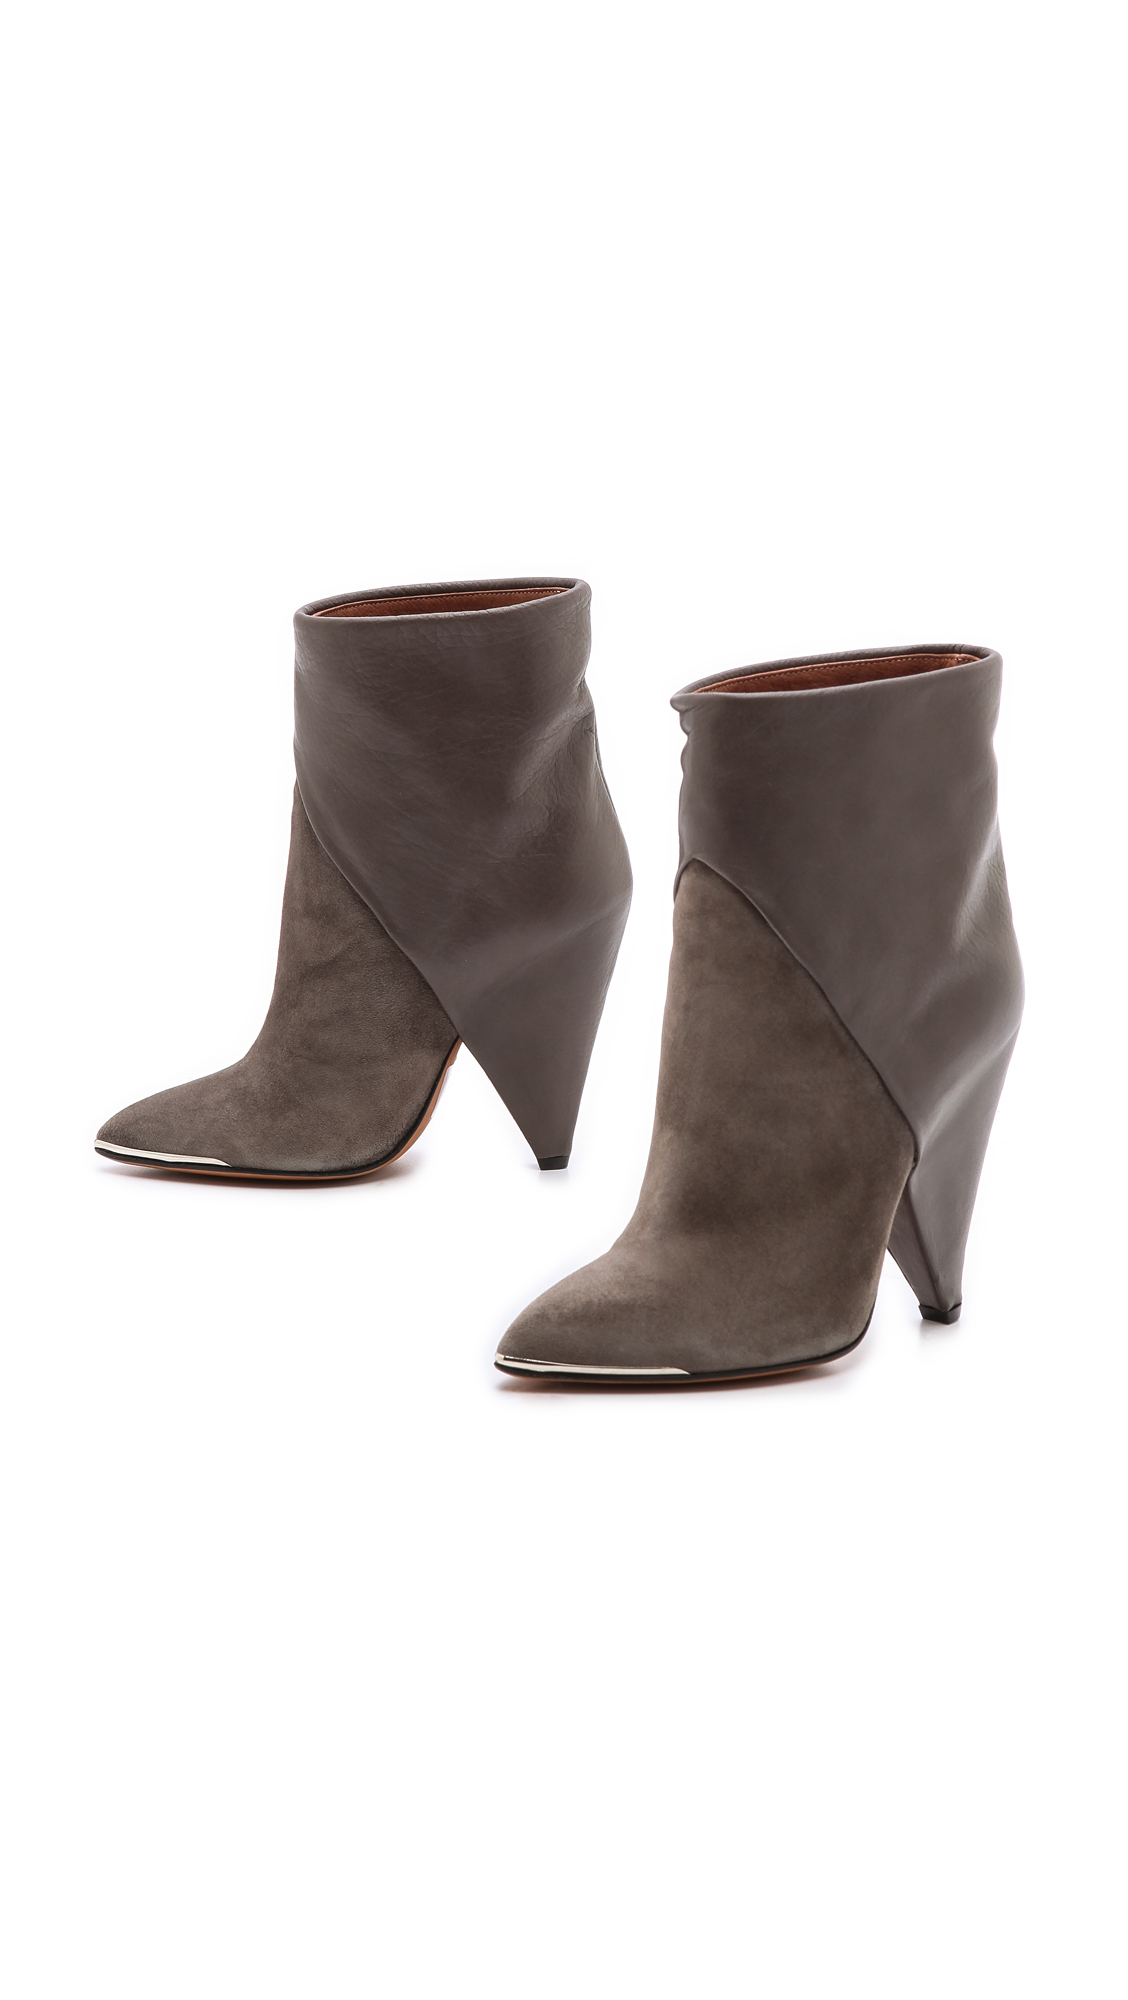 Iro Daithy Cone Heel Booties In Brown Taupe Lyst